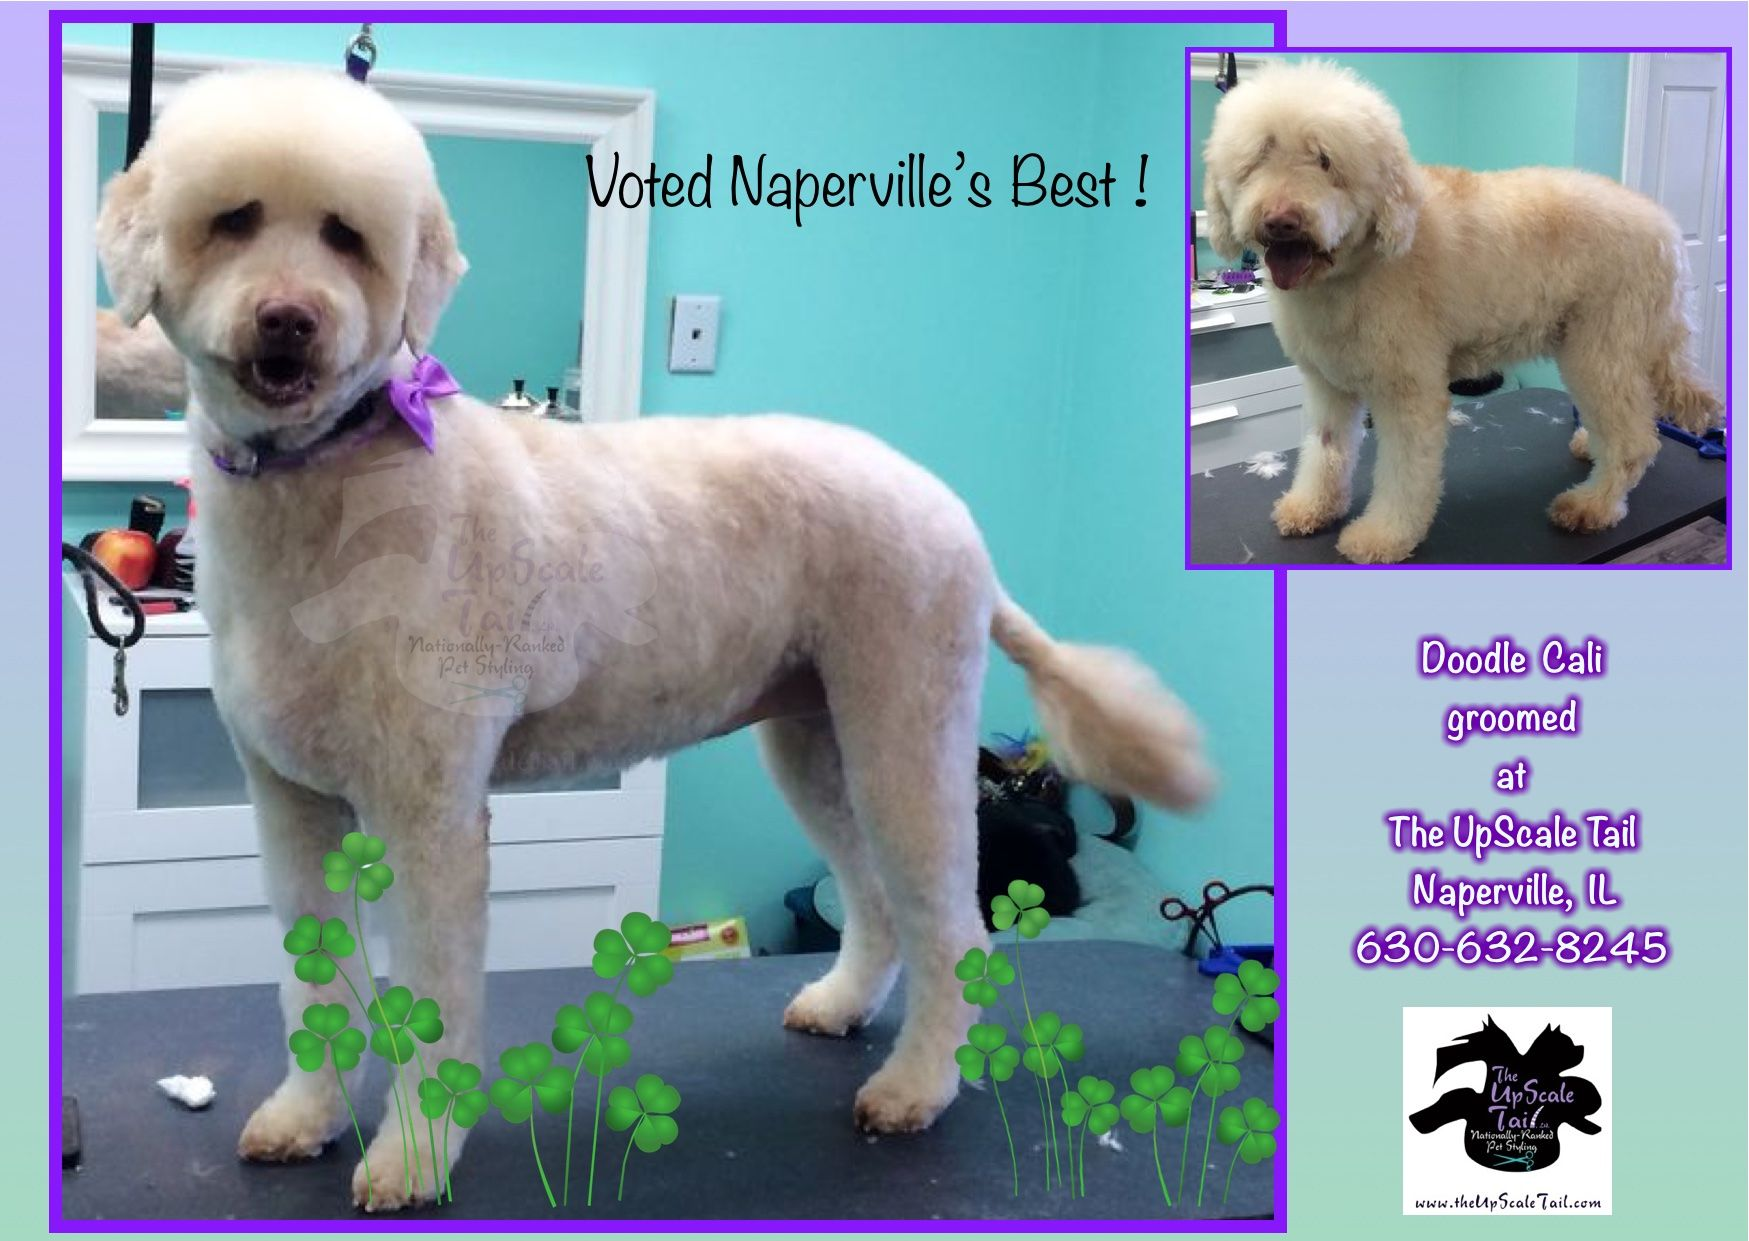 Cali the Doodle, groomed at The UpScale Tail, Naperville